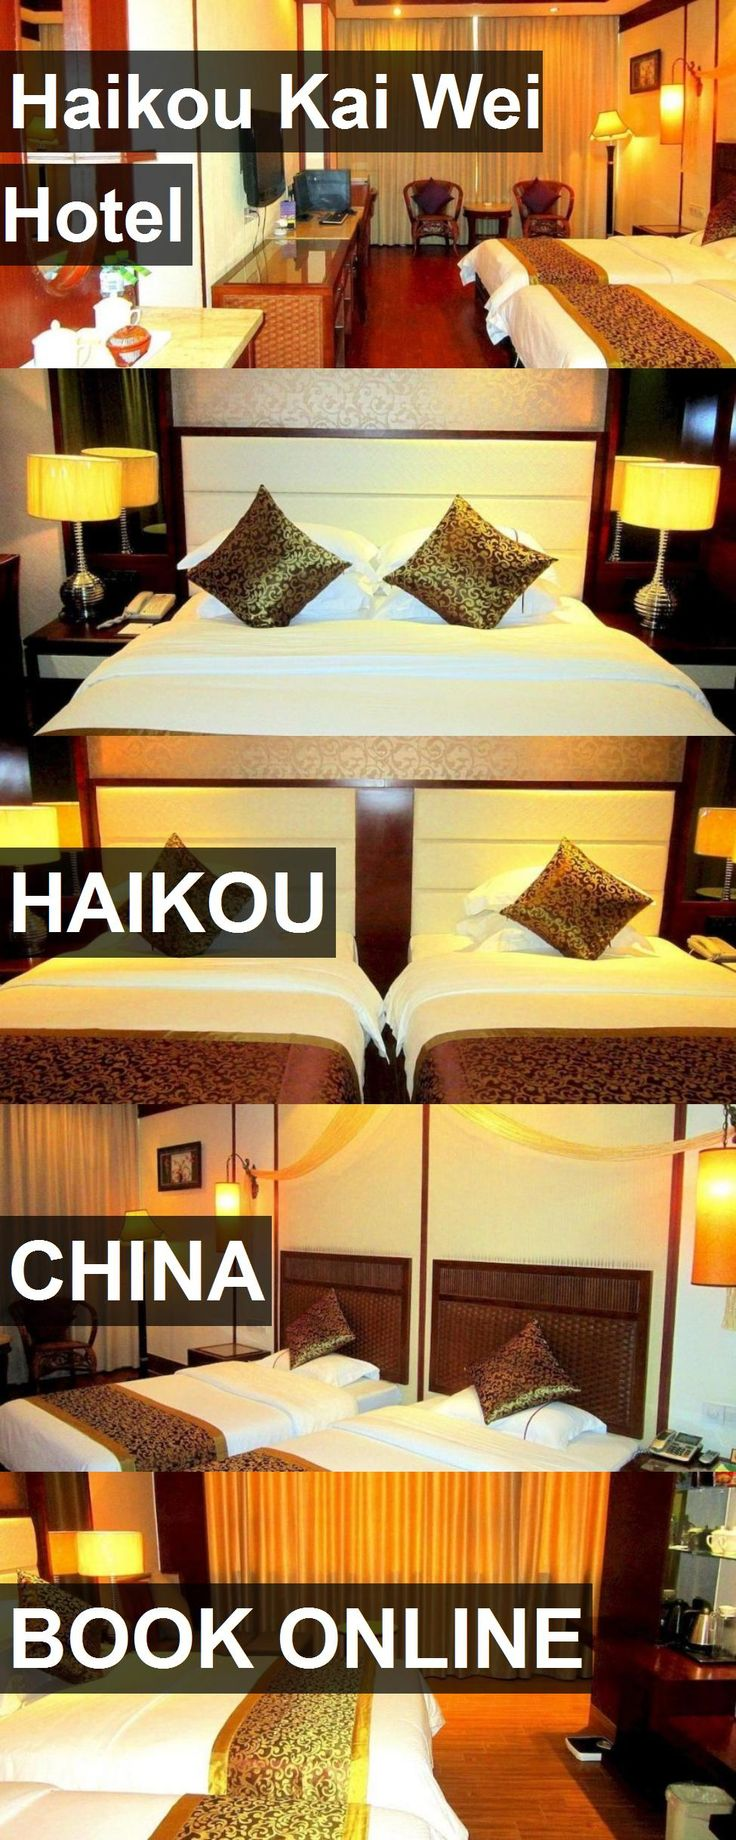 Haikou Kai Wei Hotel in Haikou, China. For more information, photos, reviews and best prices please follow the link. #China #Haikou #travel #vacation #hotel